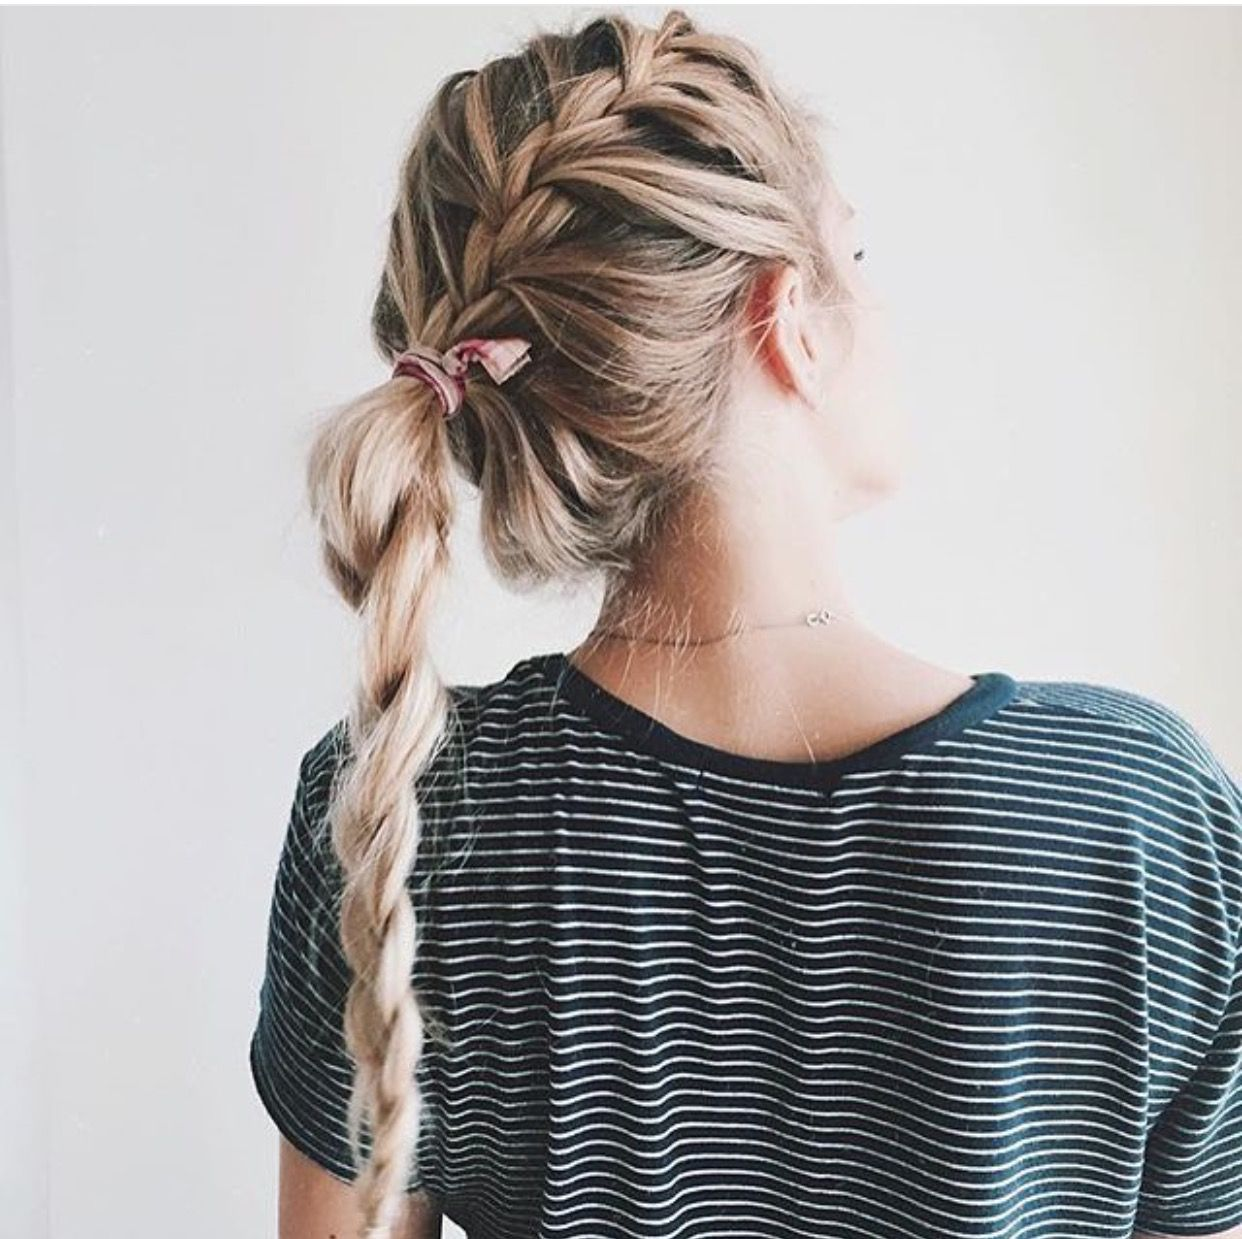 This hair is so adorable and would be perfect for those lazy days